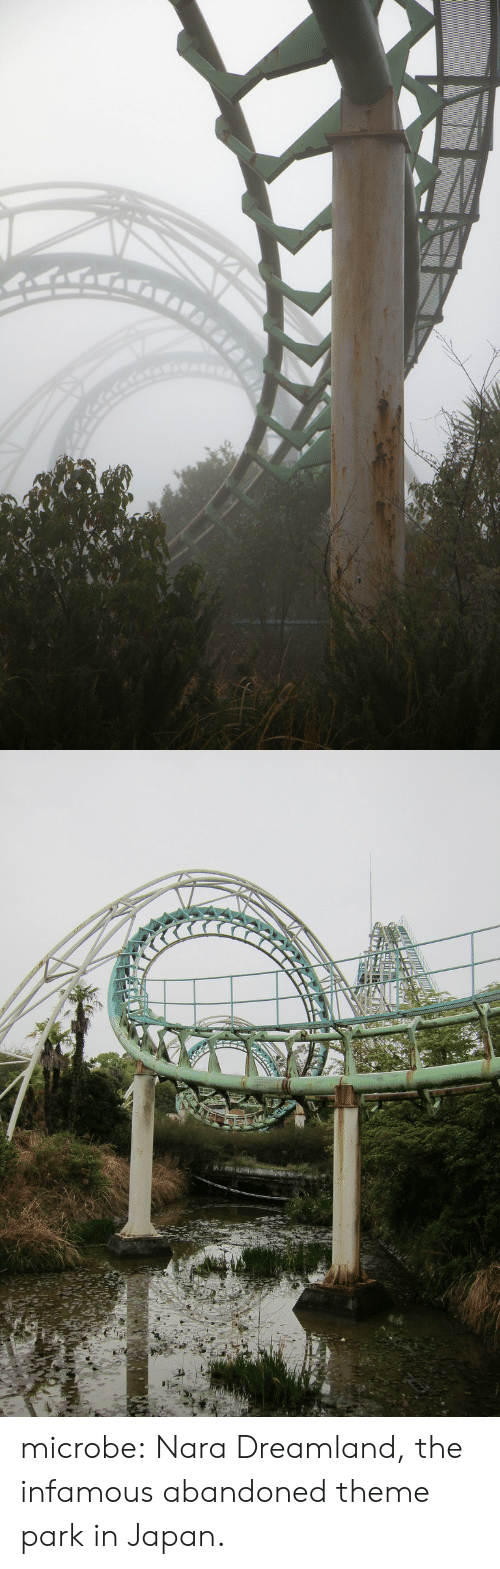 theme park: microbe: Nara Dreamland, the infamous abandoned theme park in Japan.